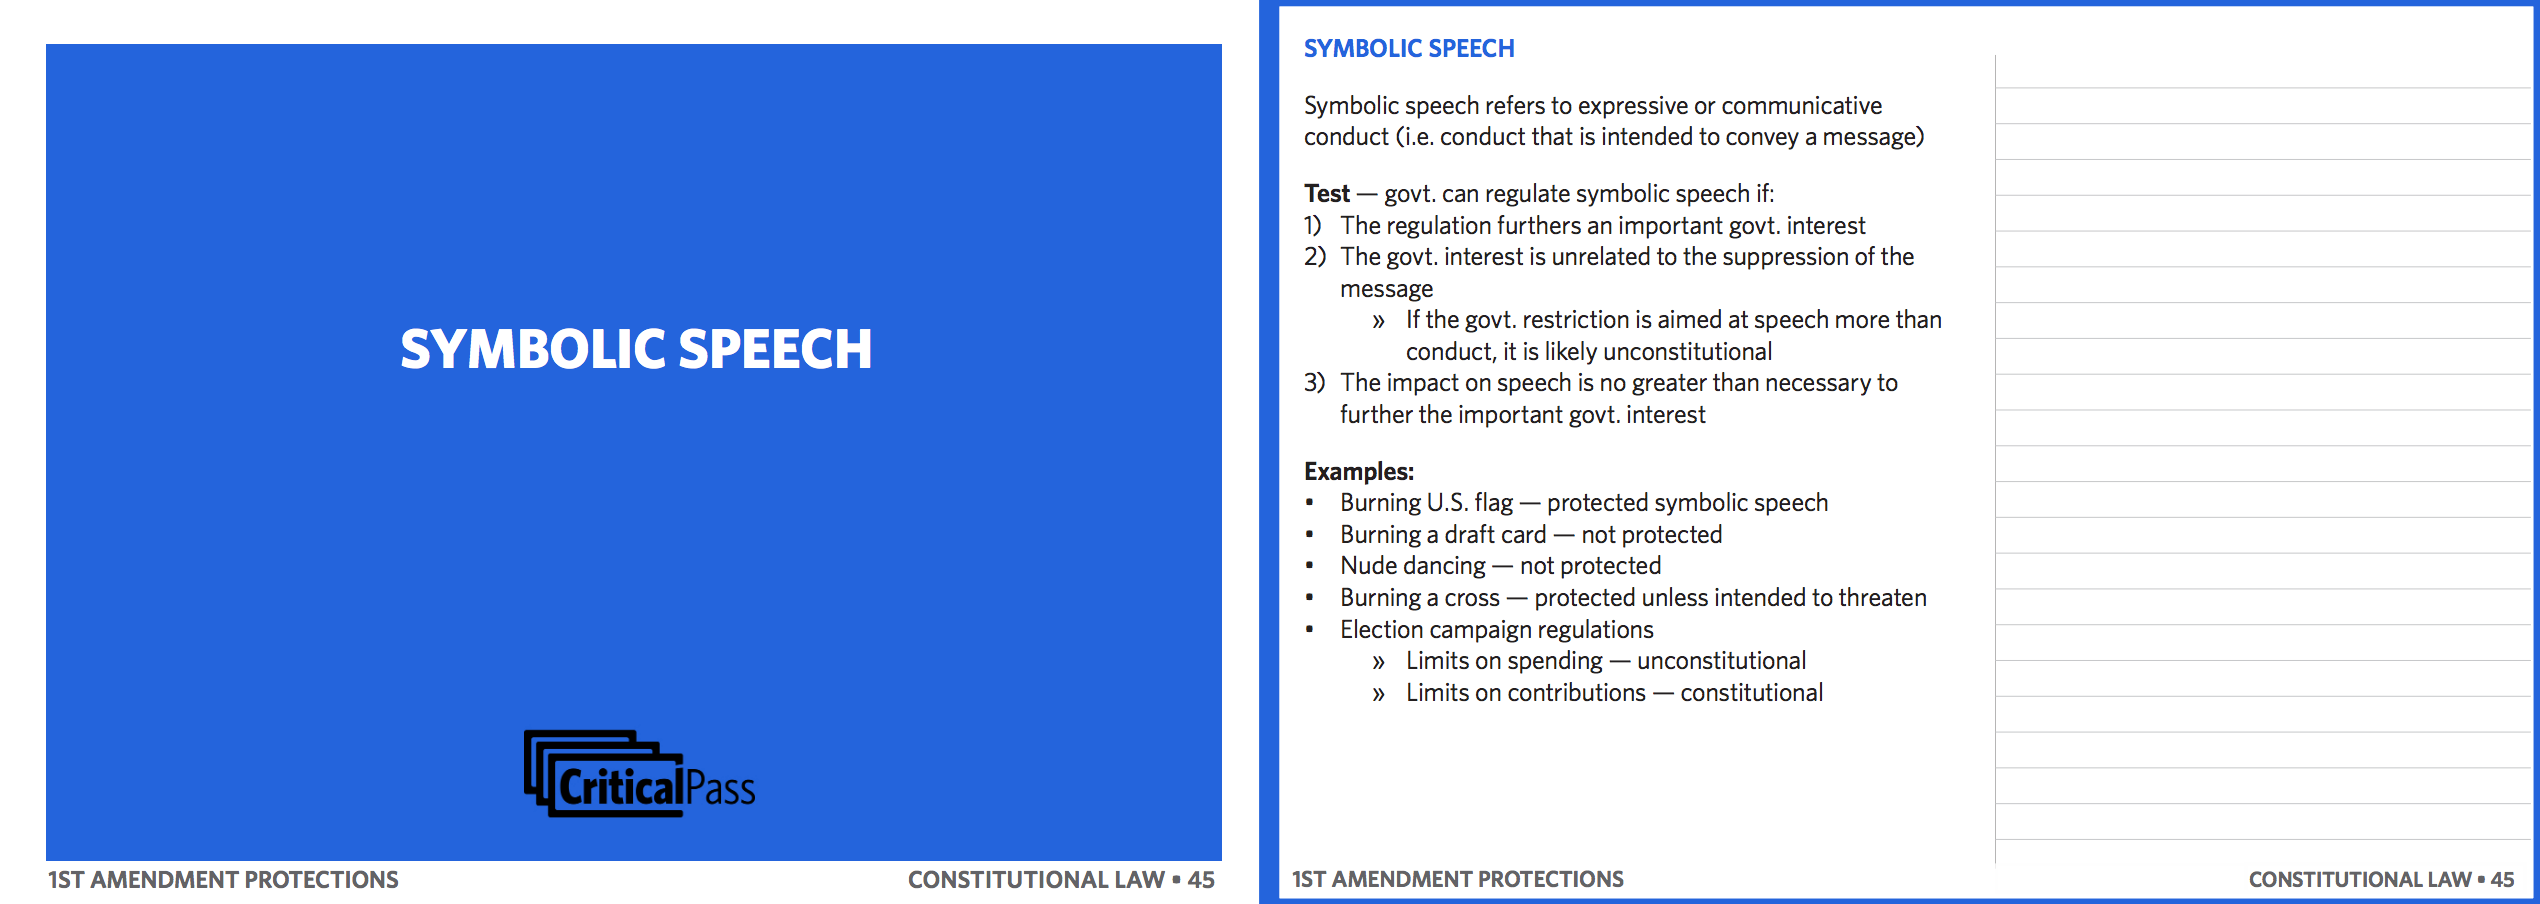 constitutional law flashcard sample